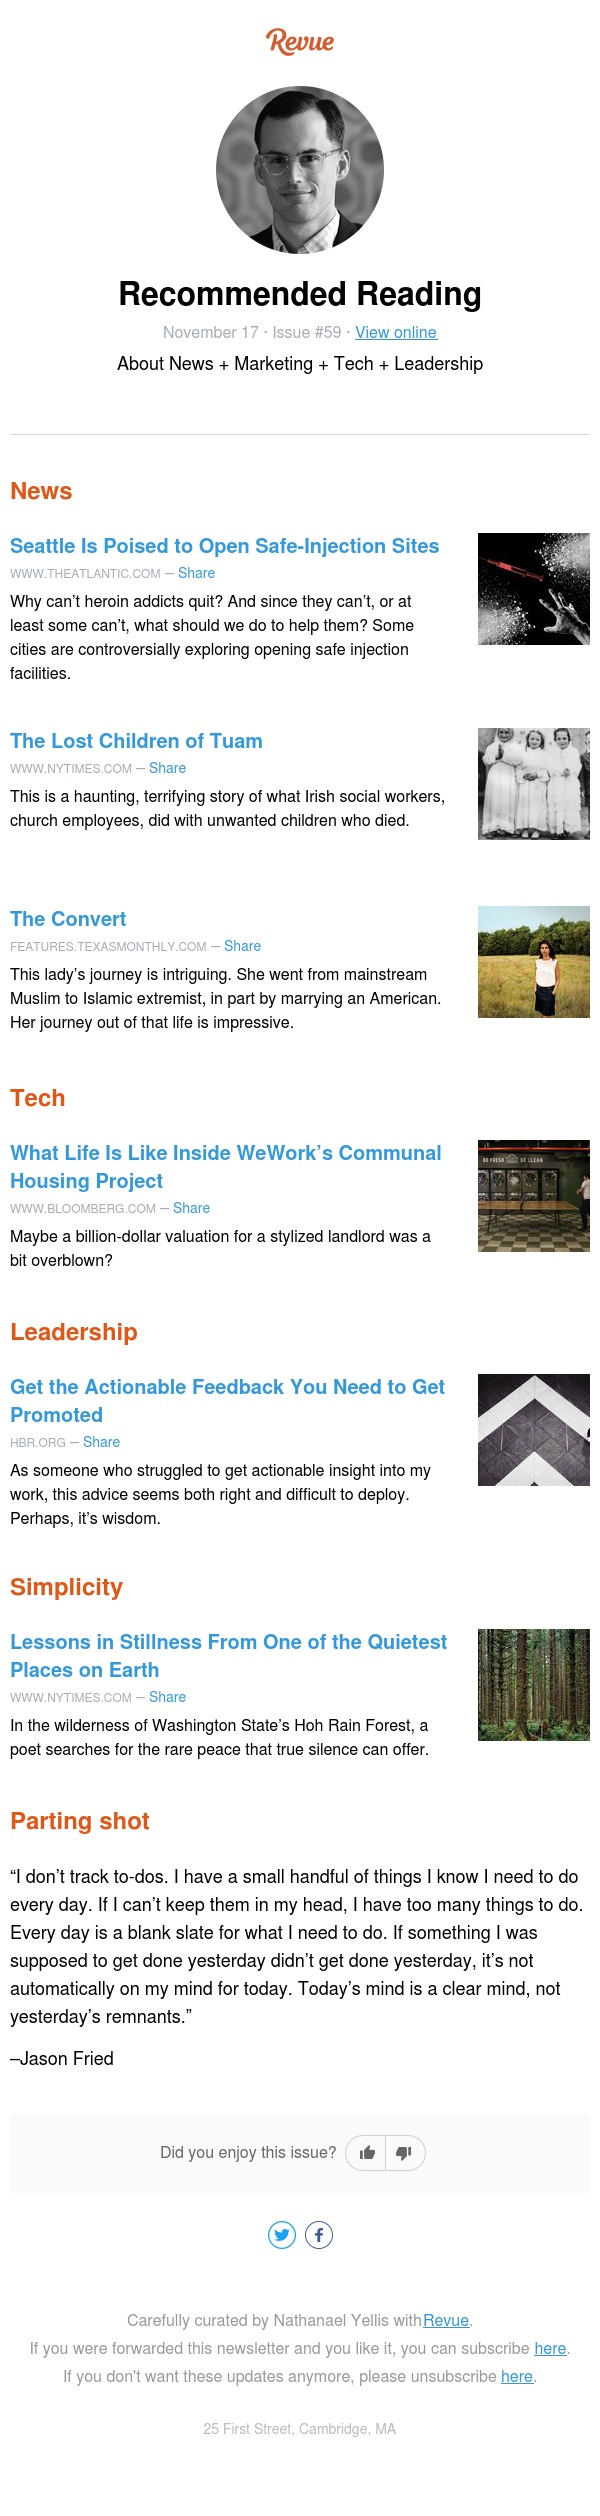 Recommended Reading in News, Tech, Leadership, and Simplicity